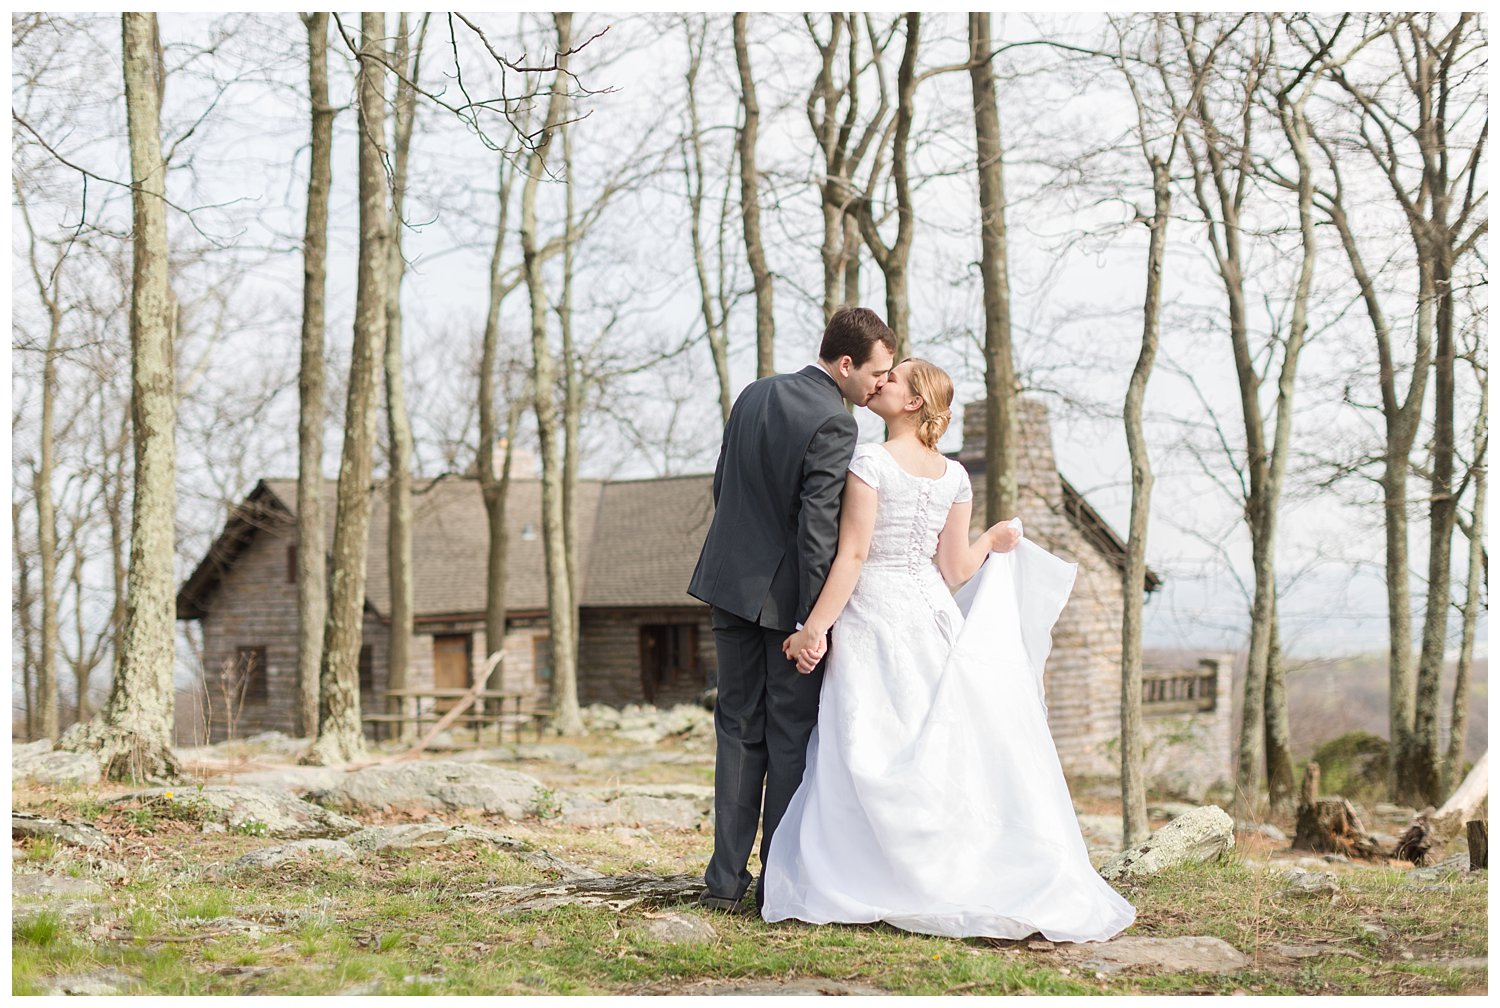 The Tea Room at Gambrill State Park wedding photography by elovephotos